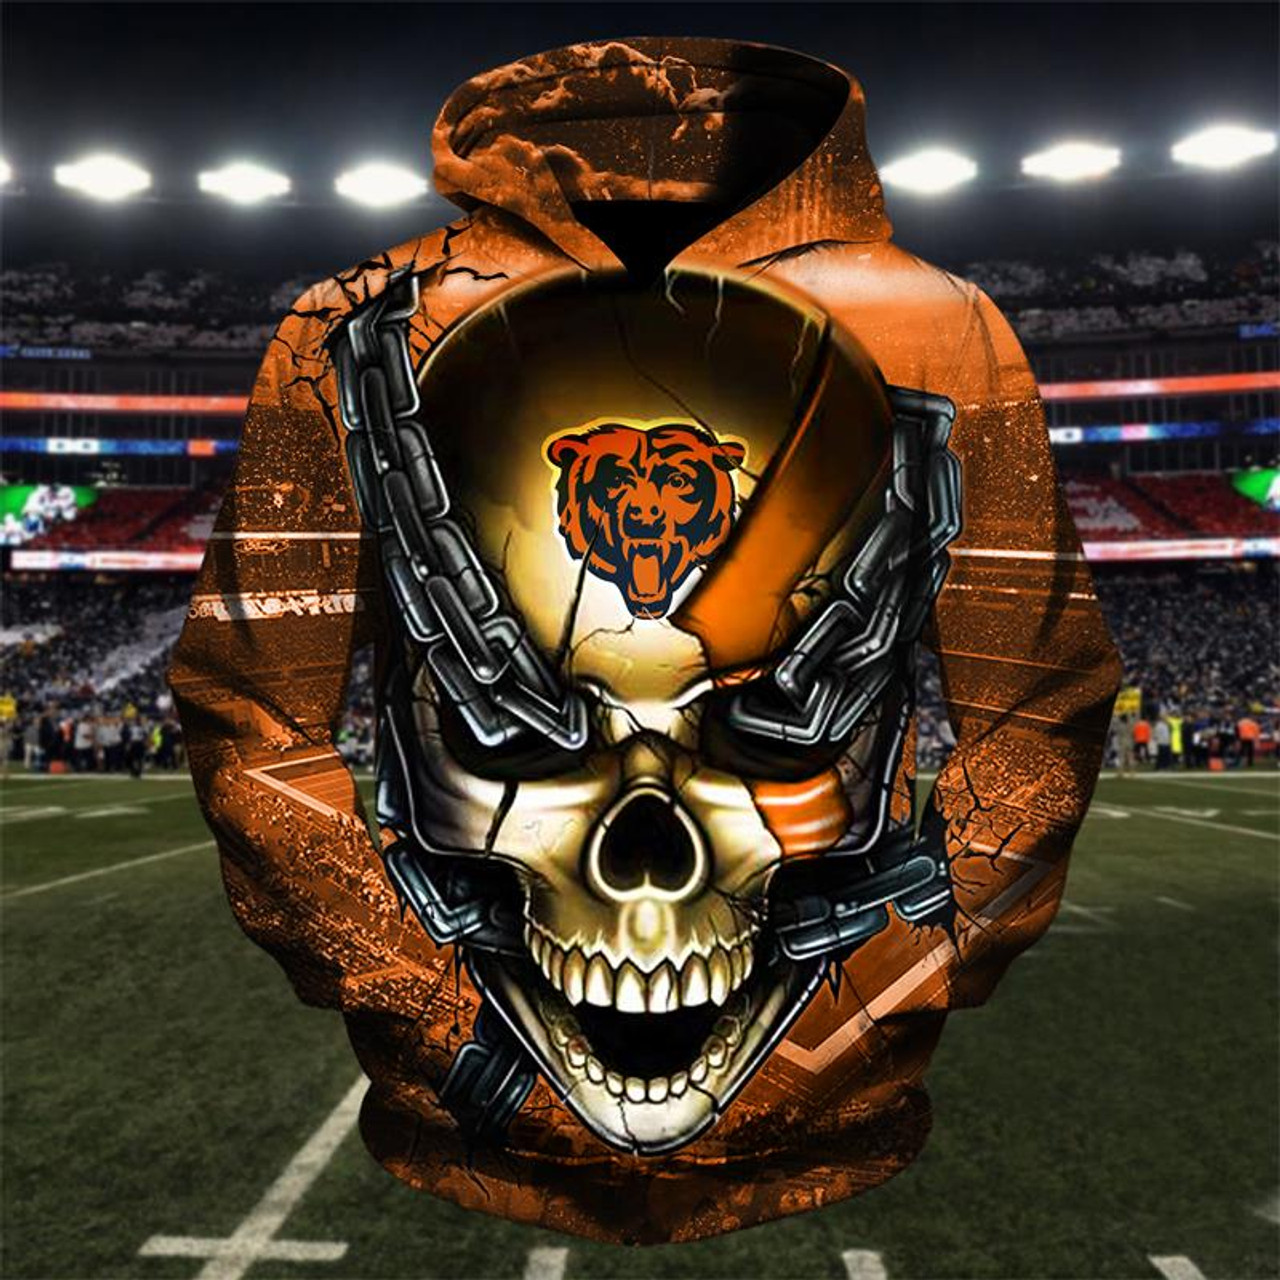 6d5fb478 **(OFFICIAL-N.F.L.CHICAGO-BEARS-TEAM-FOOTBALL-PULLOVER-HOODIES &  OFFICIAL-BEARS-TEAM-LOGO-SKULL/CHICAGO-CITY-CHAINS,NICE-CUSTOM-3D-GRAPHIC-PRINTED-DOU...